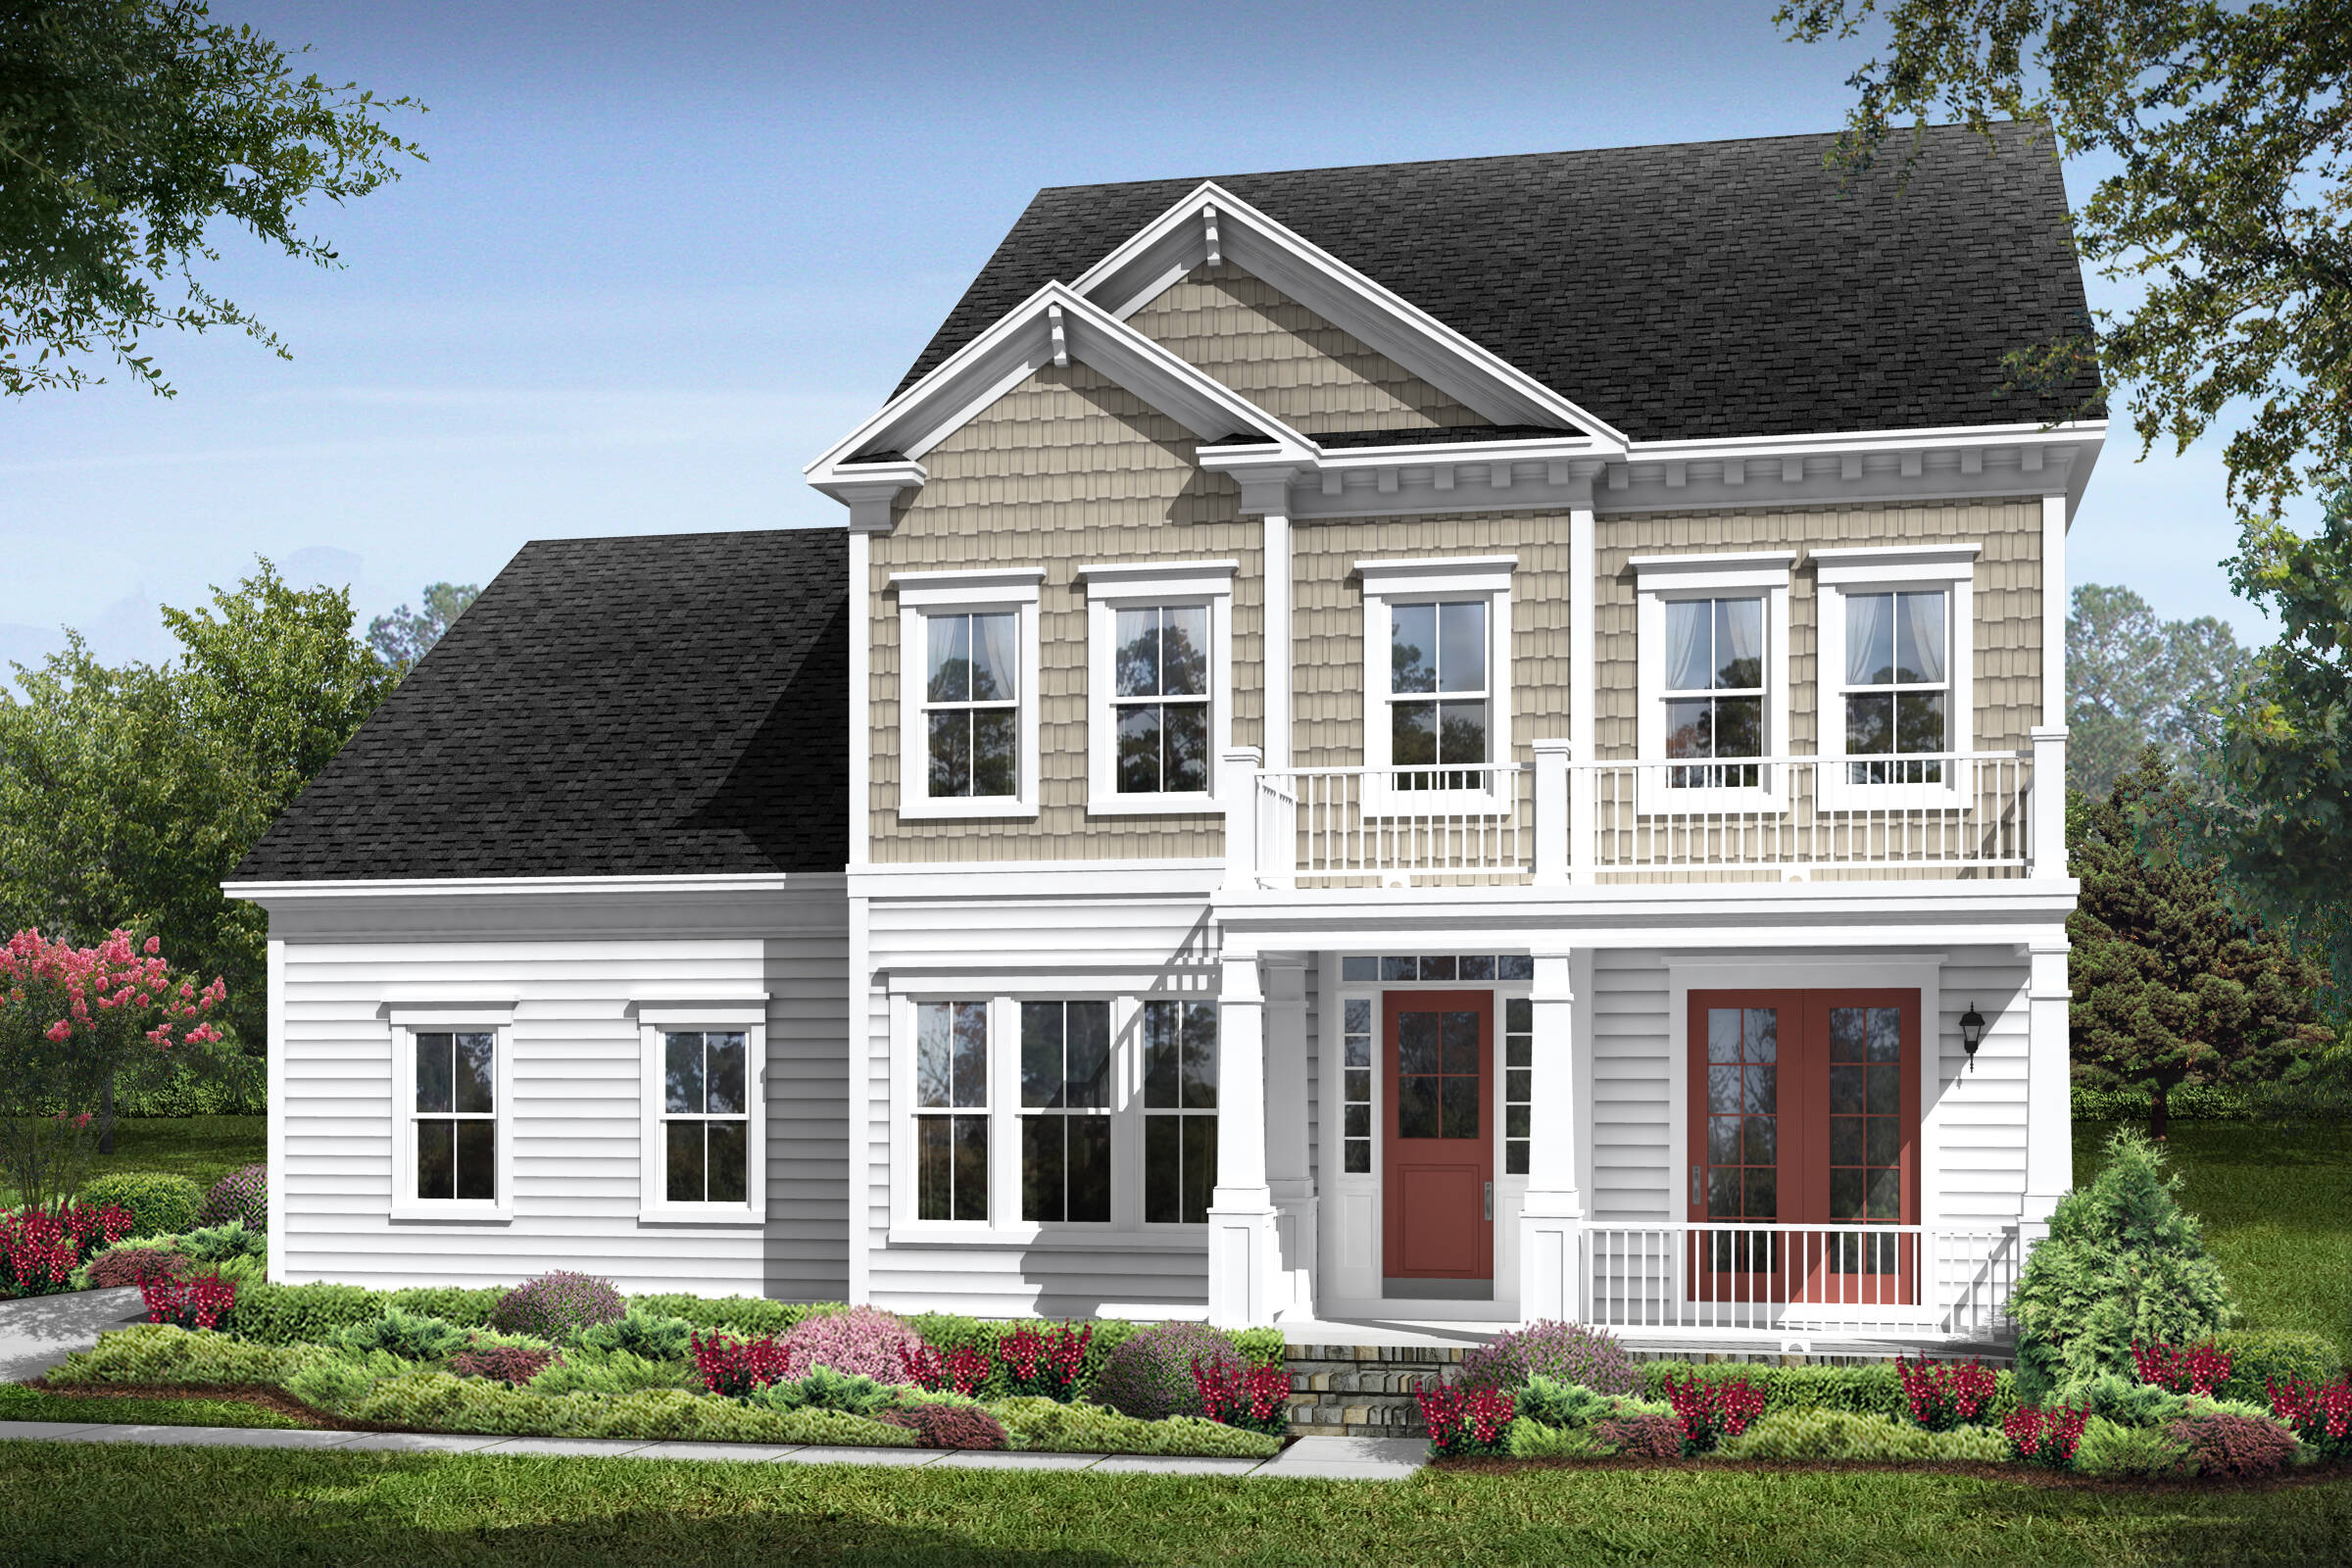 chadwick-fs-new-homes-at-willowsford-greens